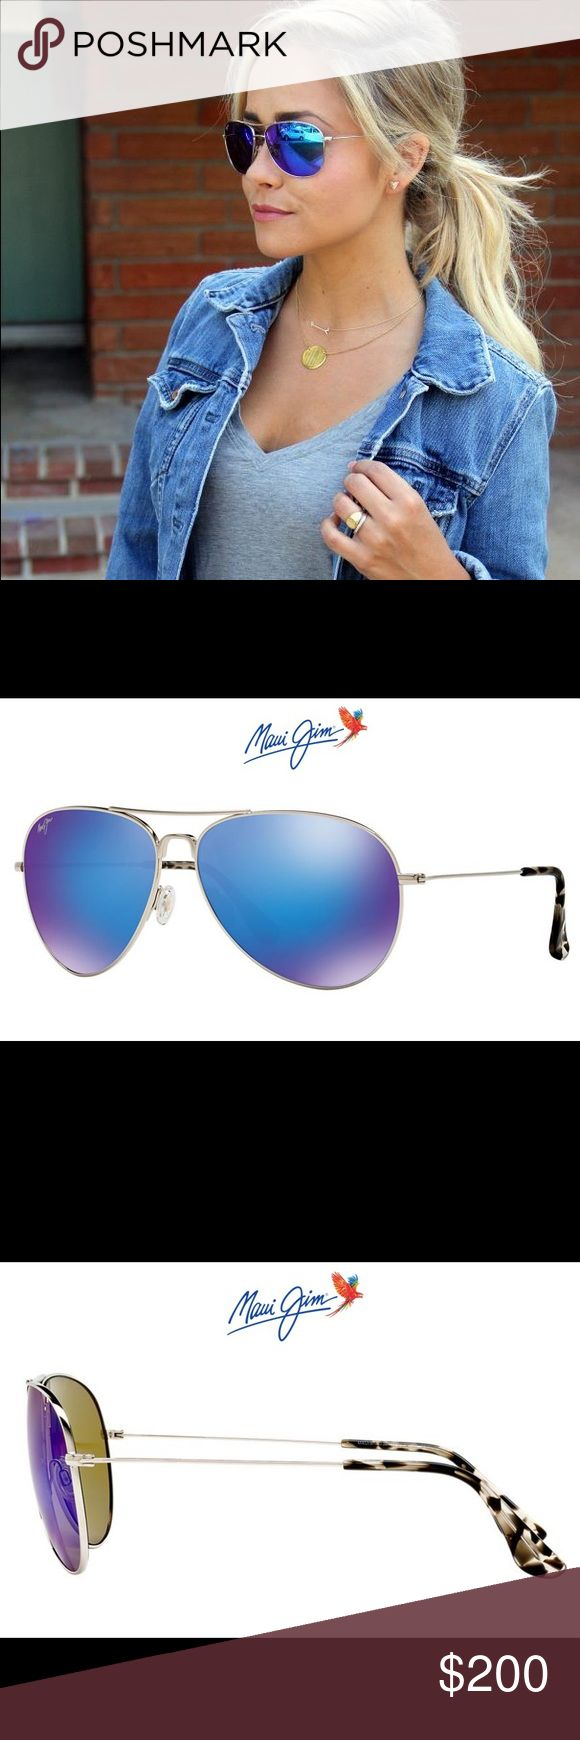 New Maui Jim Mavericks Blue Women's Sunglasses  New Maui Jim Blue Hawaii Maverick Sunglasses for Women!! Super stylish aviator design with blue mirrored lenses. See pictures for size details. Gorgeous glasses! Bought them online and they don't fit my face  Maui Jim Accessories Sunglasses